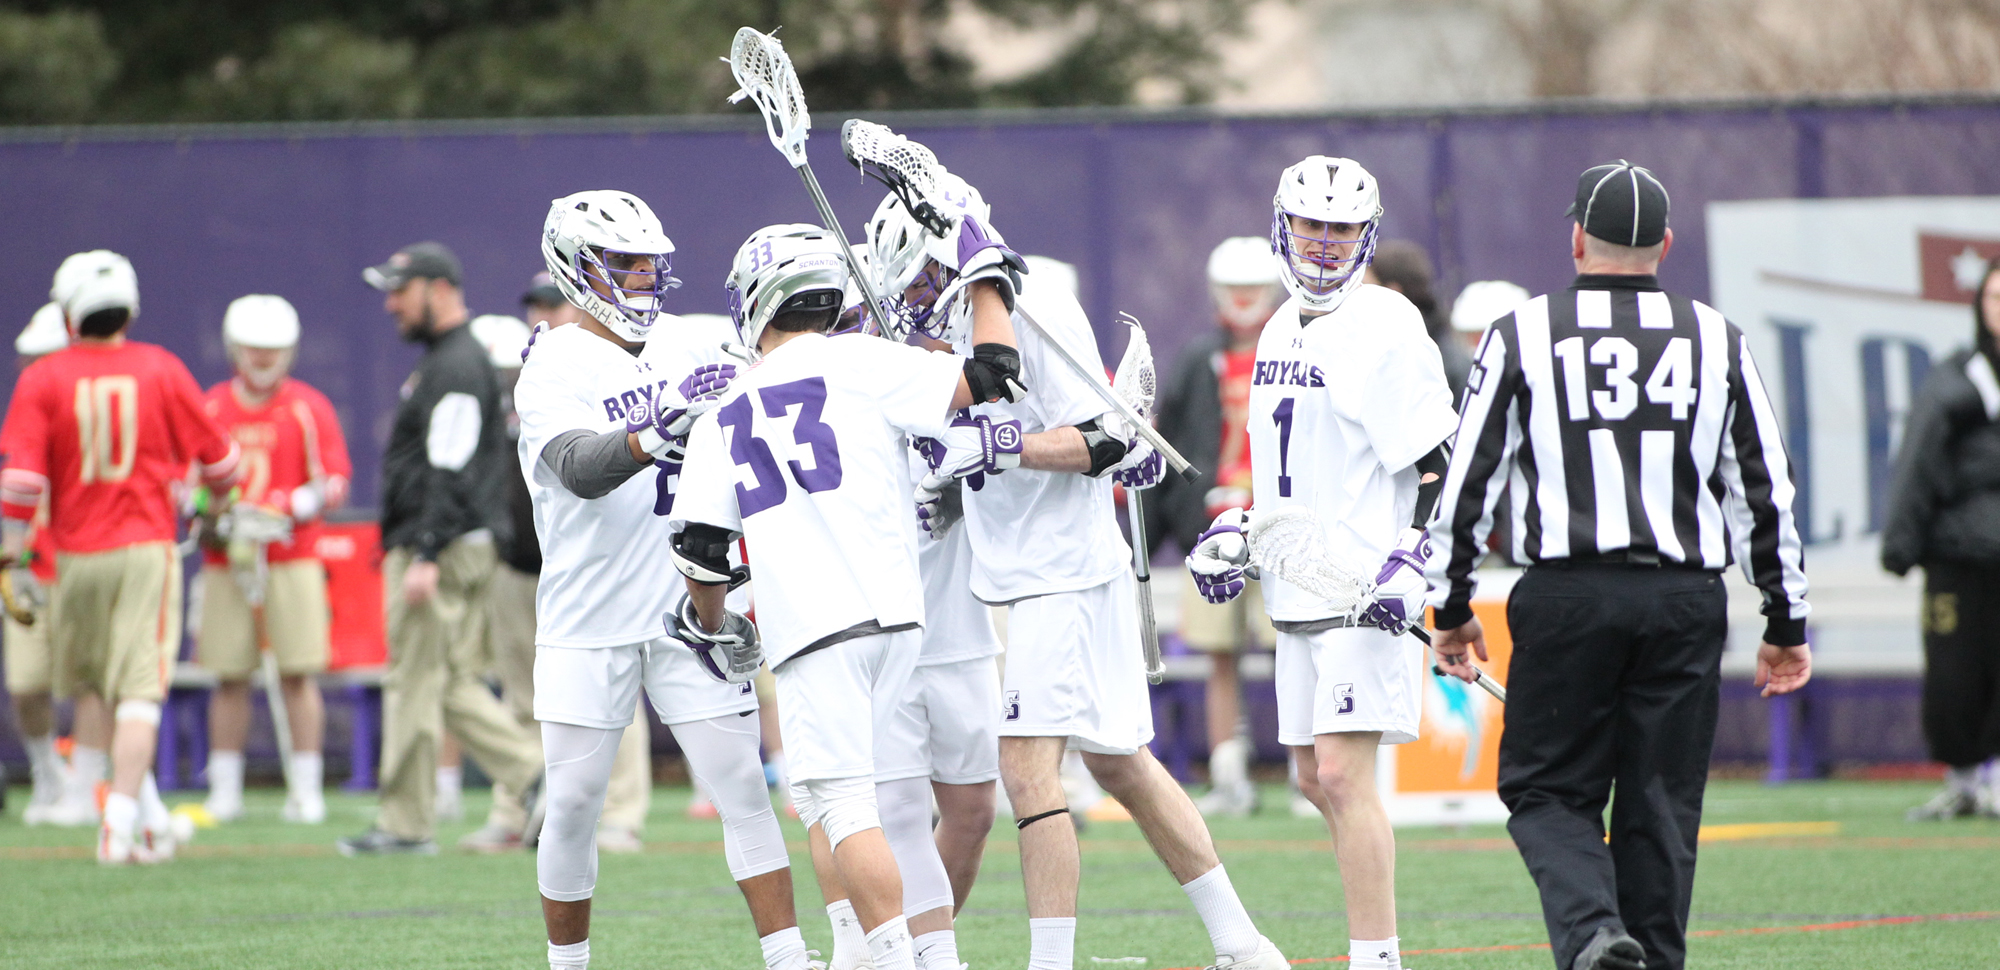 Men's Lacrosse To Hold Fall ID Clinic on October 13